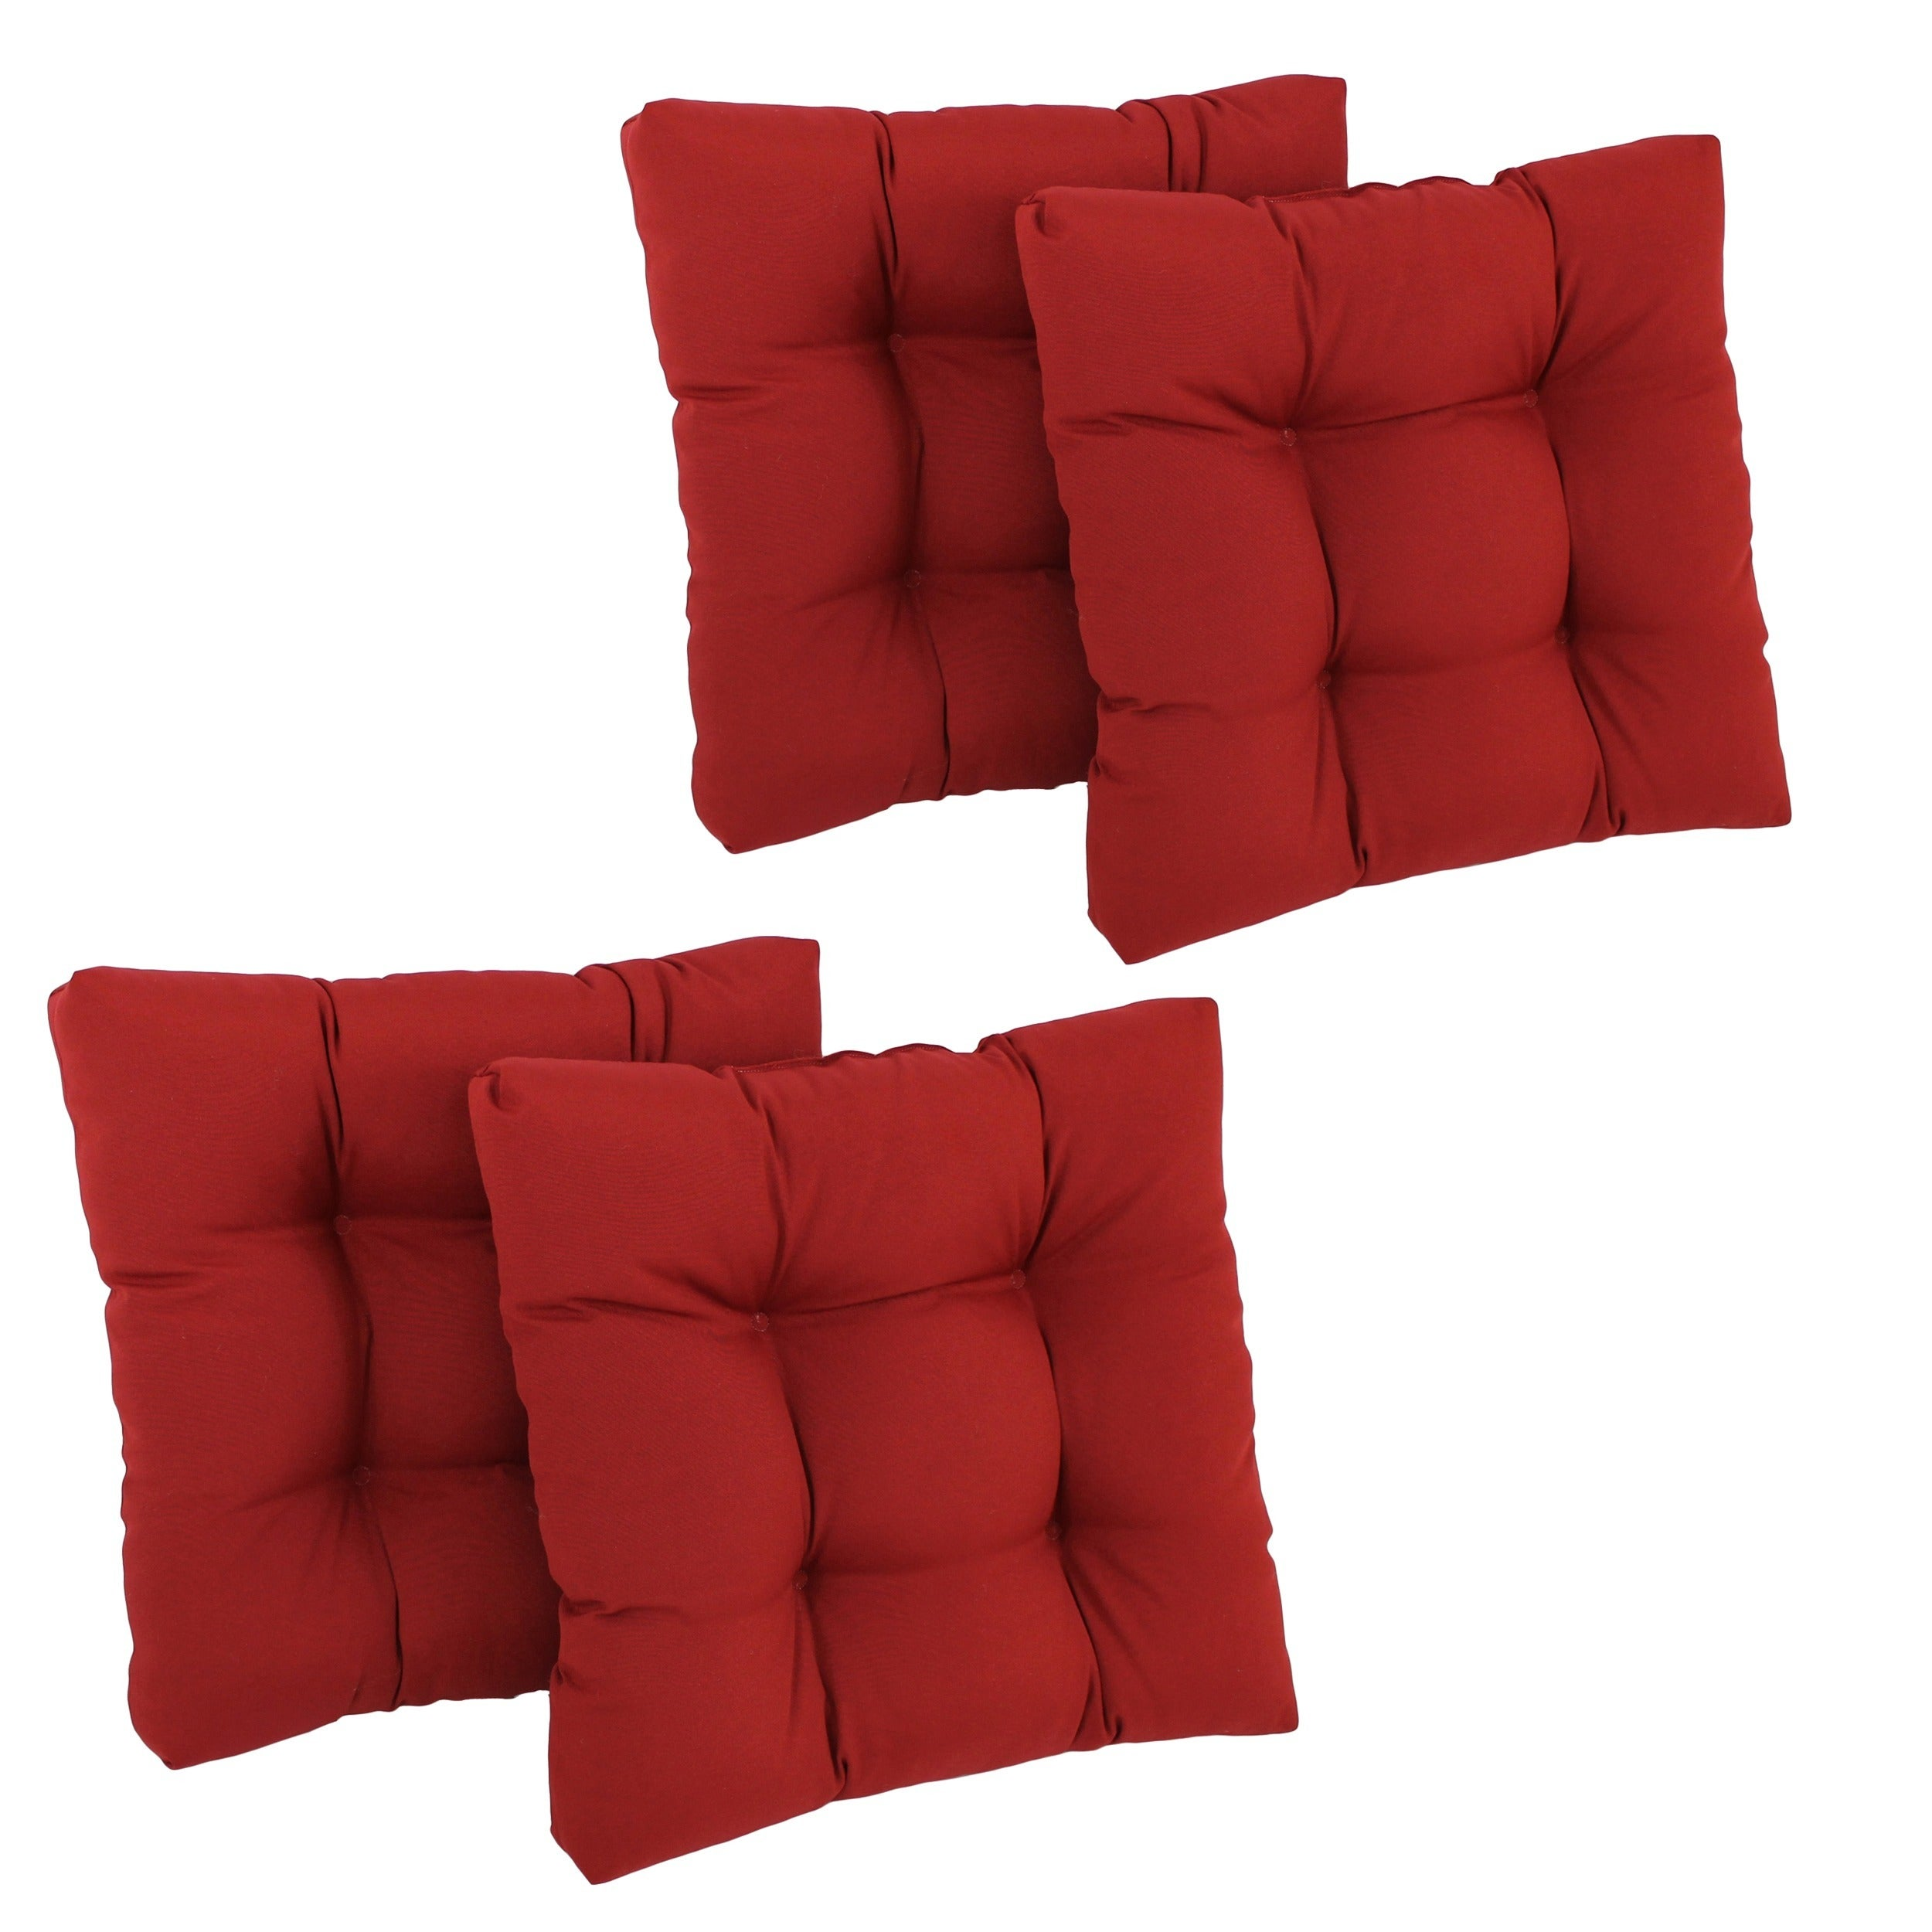 Blazing Needles 19x19-inch Tufted Chair Cushions (Set of 4) at Sears.com